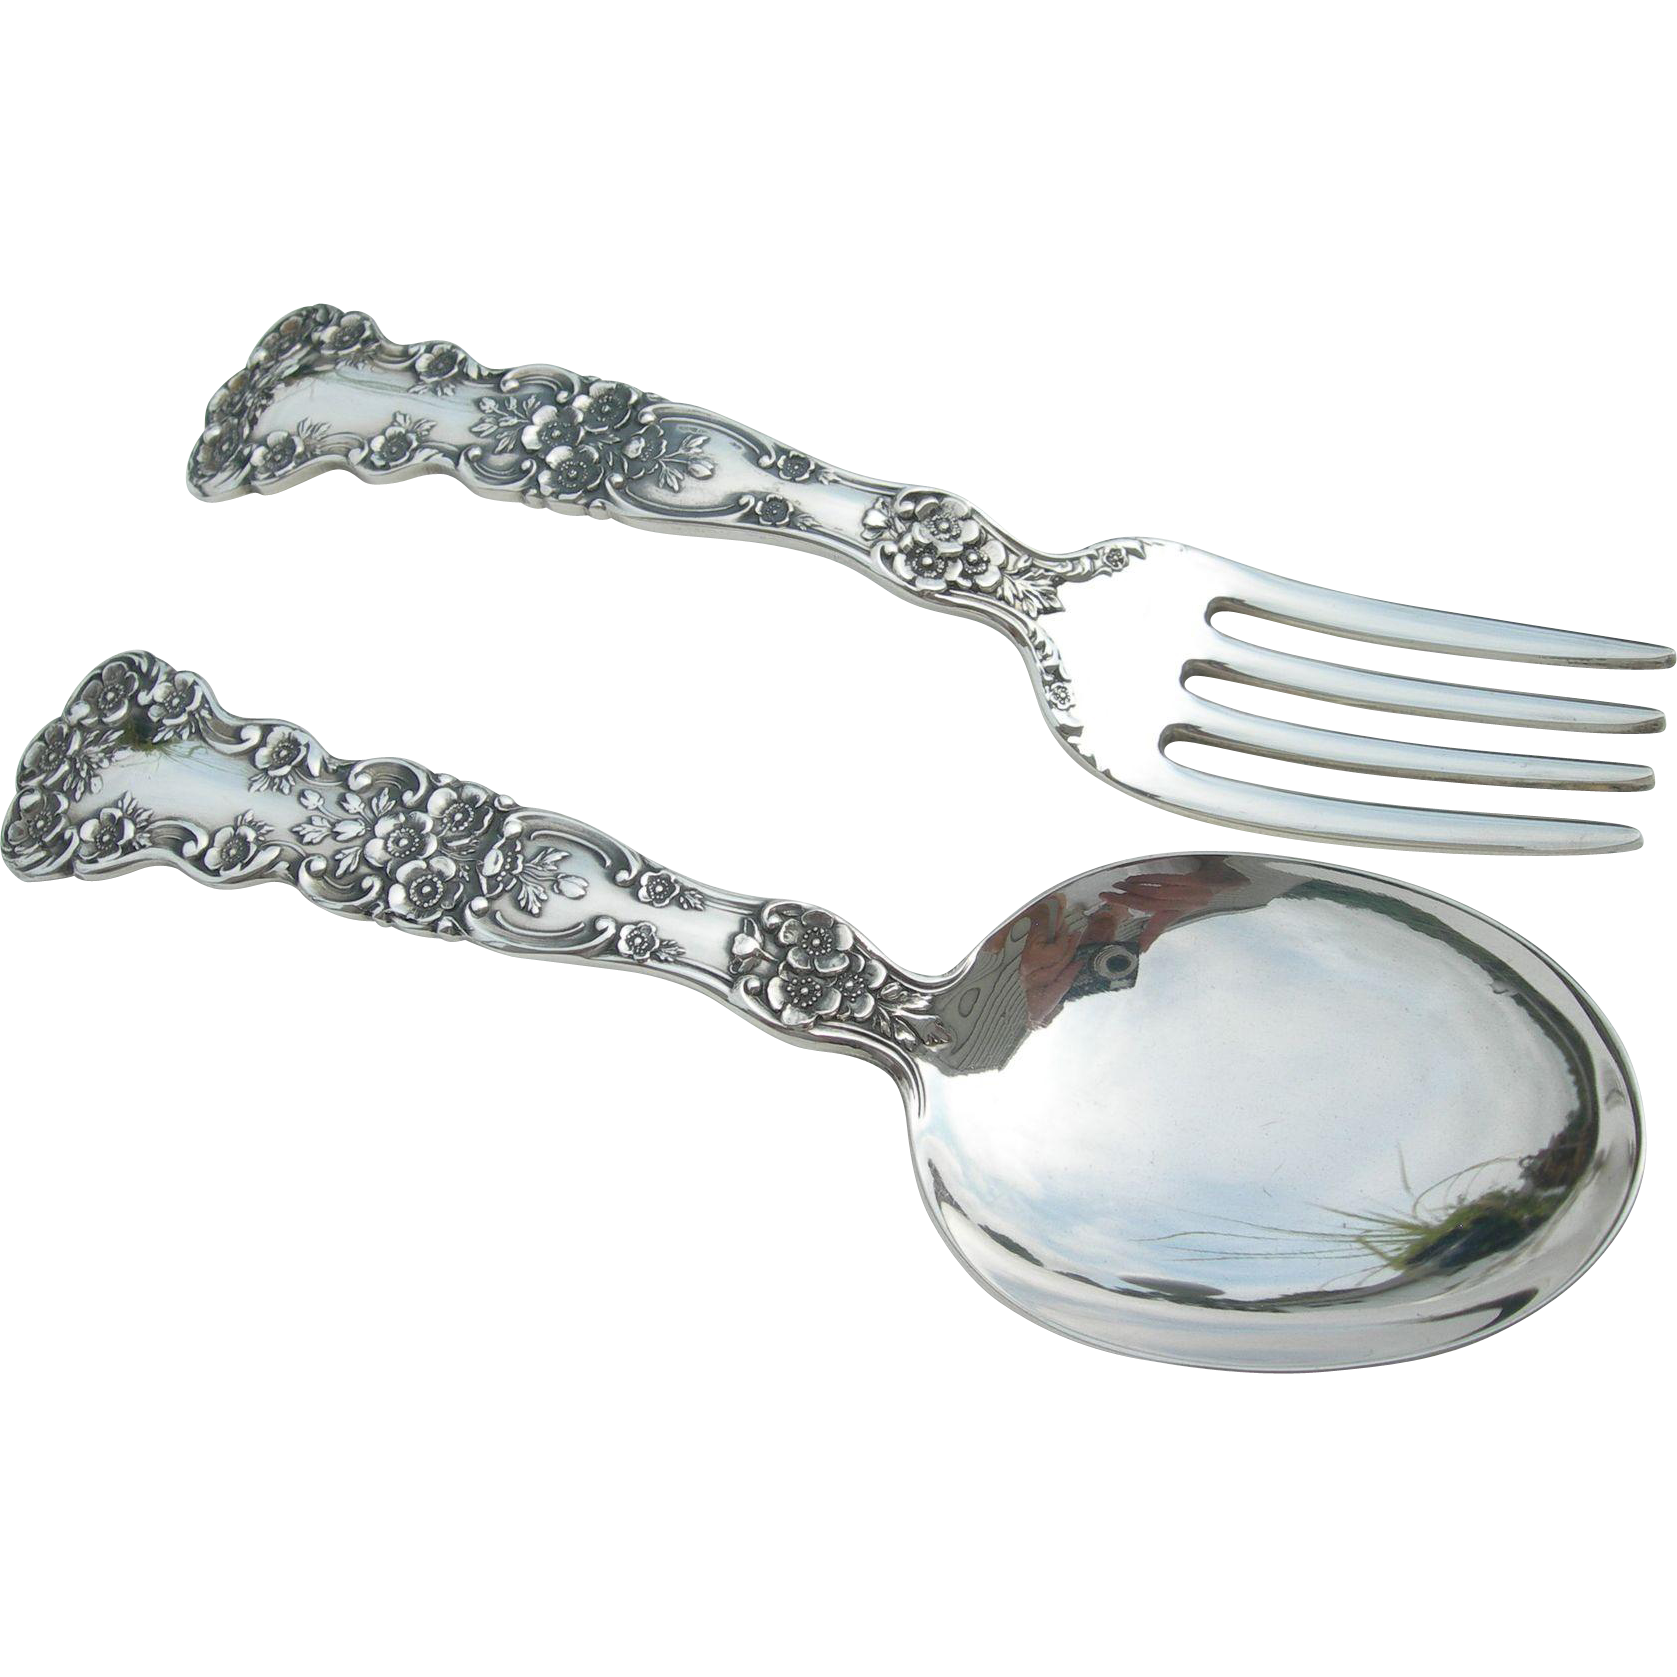 Gorham sterling baby child 39 s spoon and fork set for Sterling silver baby spoon and fork